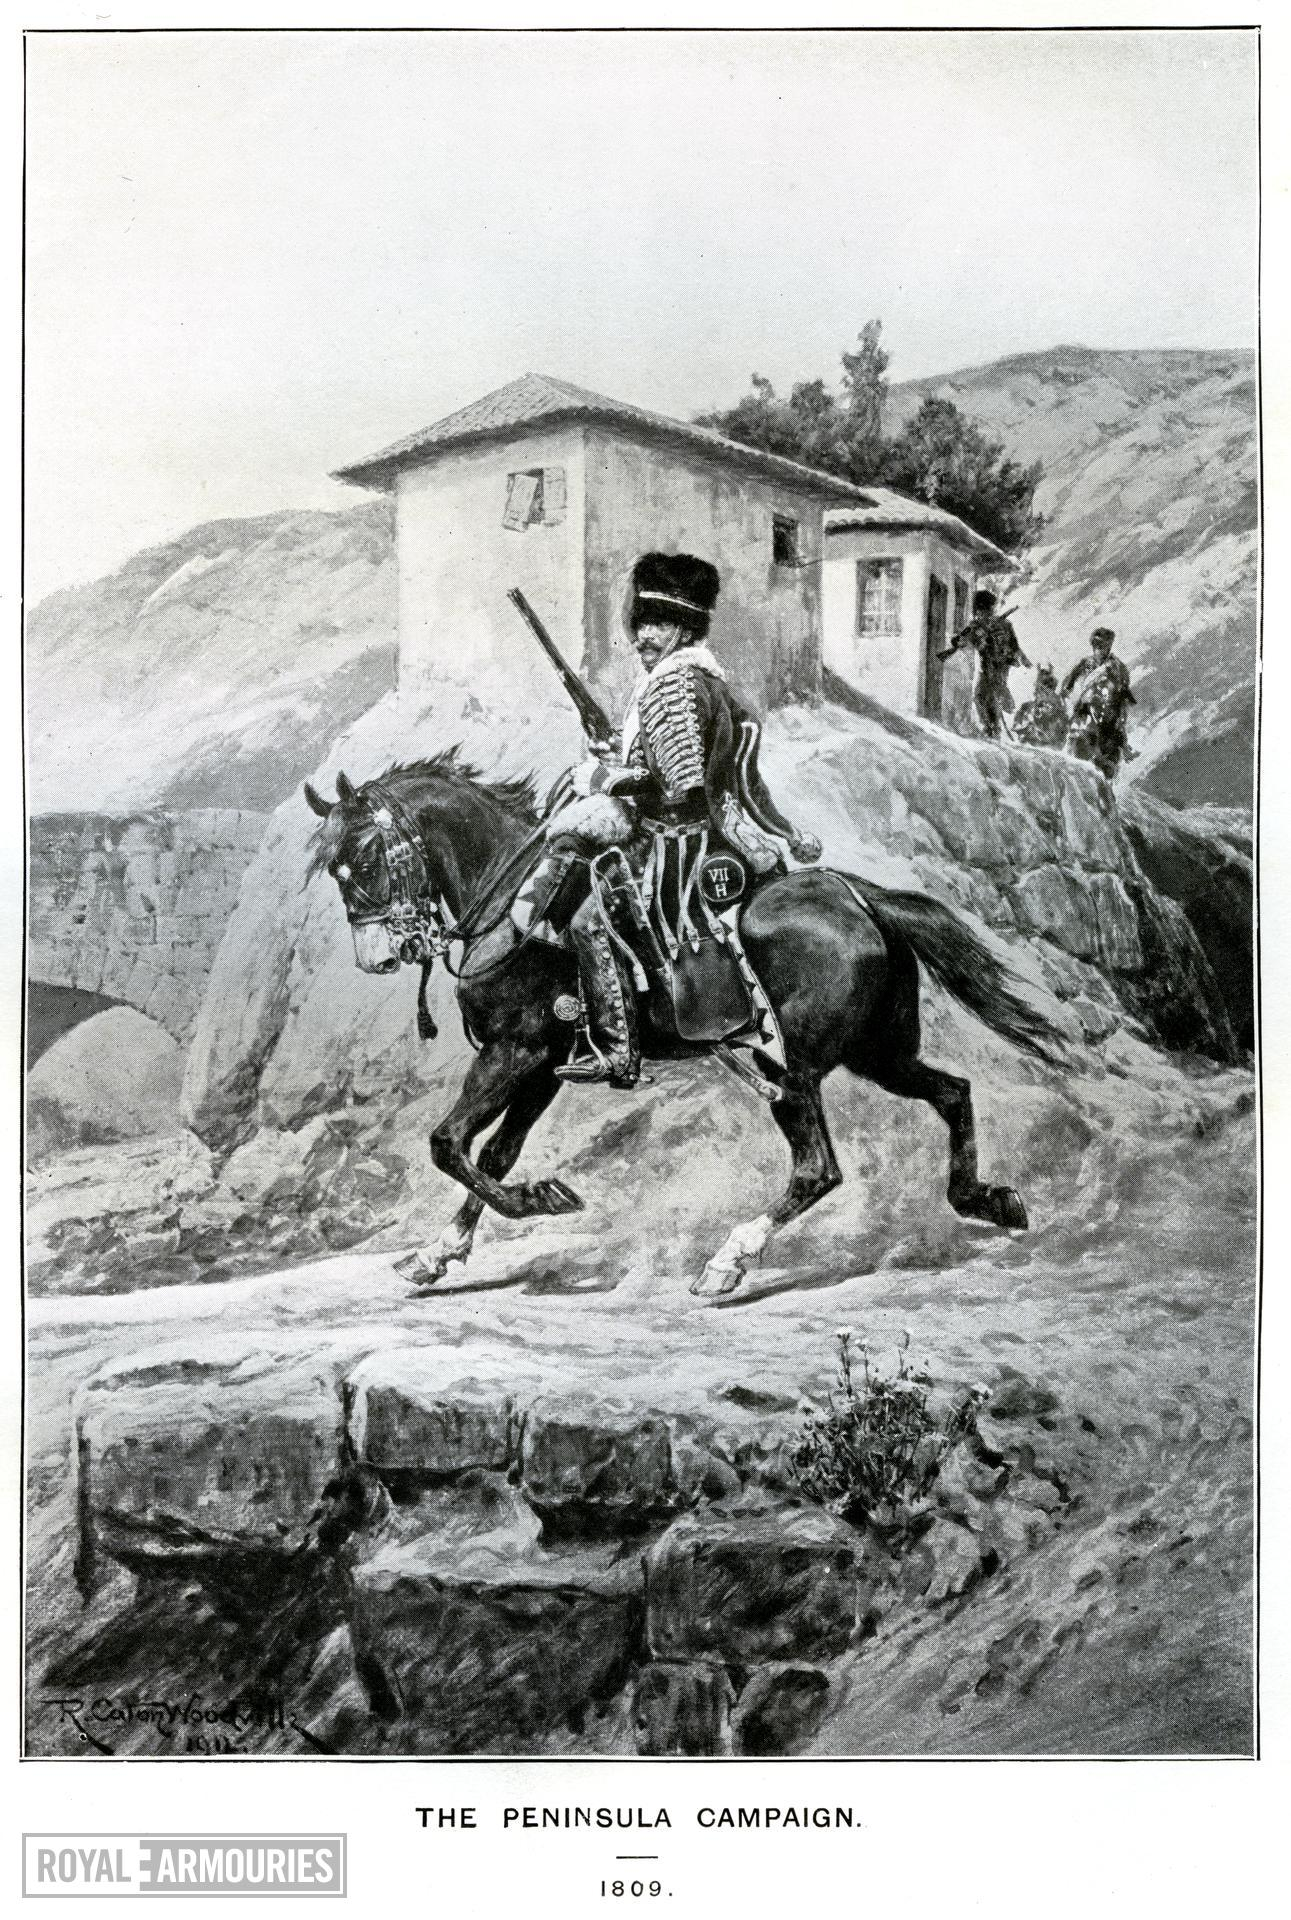 """The Peninsula Campaign, 1809. Hussar of the 7th (Queen's Own) in the Peninsula carrying a Baker Cavalry Rifle. From the book by C.R.B. Barrett, """"The Queen's Own Hussars, """" vol. 1, London: Royal Unites Services Institute, 1914. Facing p. 292."""